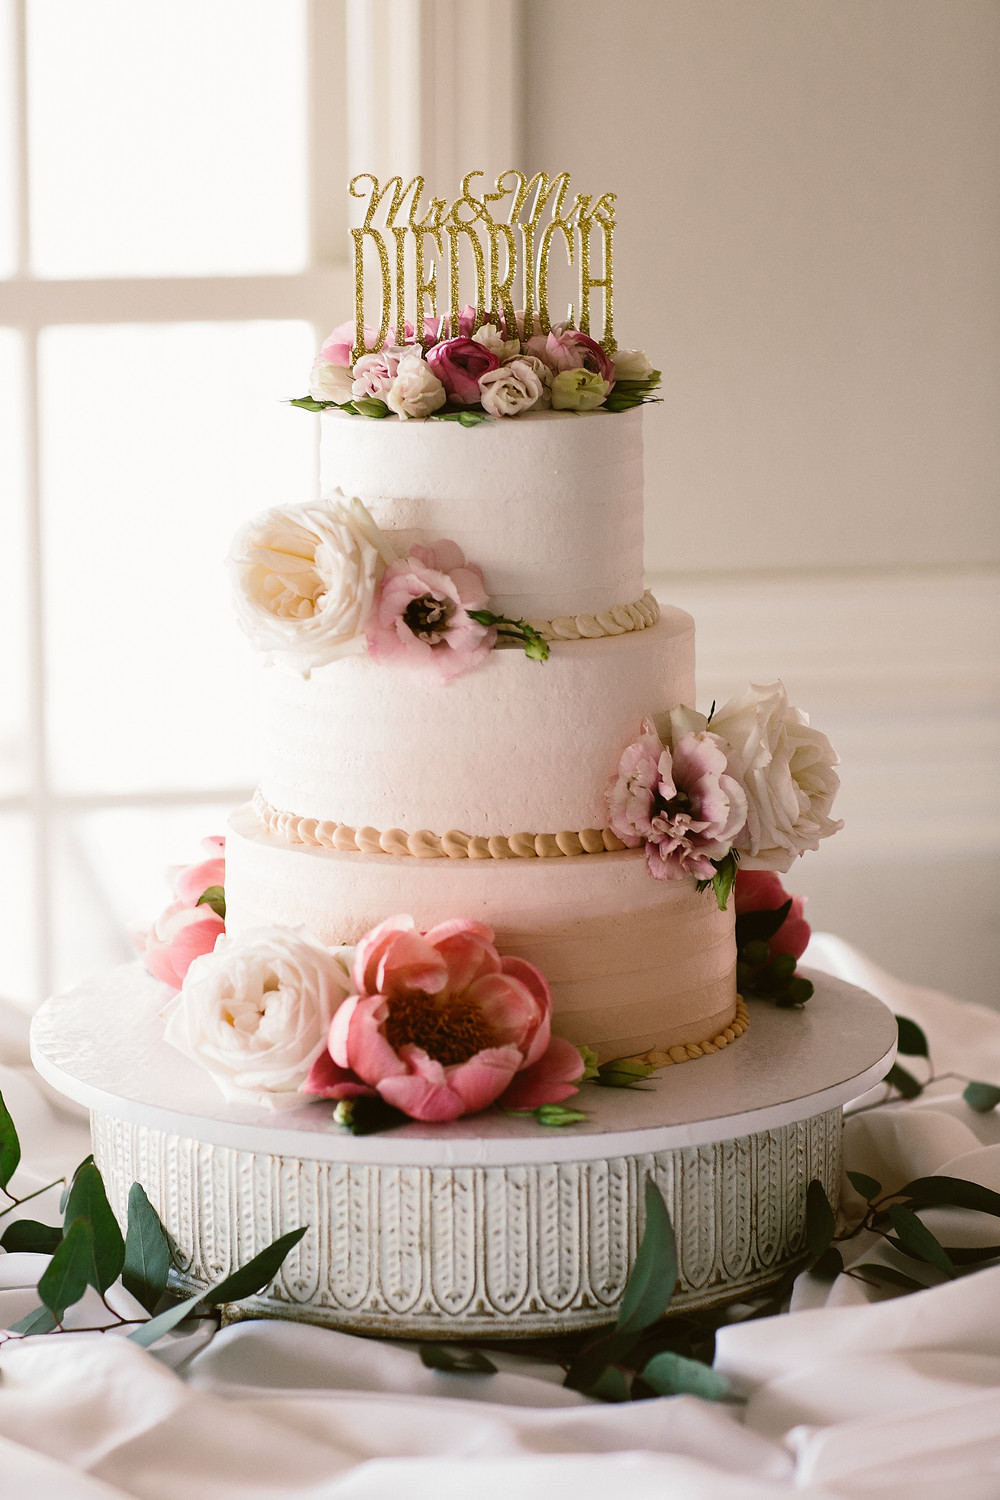 Denver Wedding Florist - flowers on cake